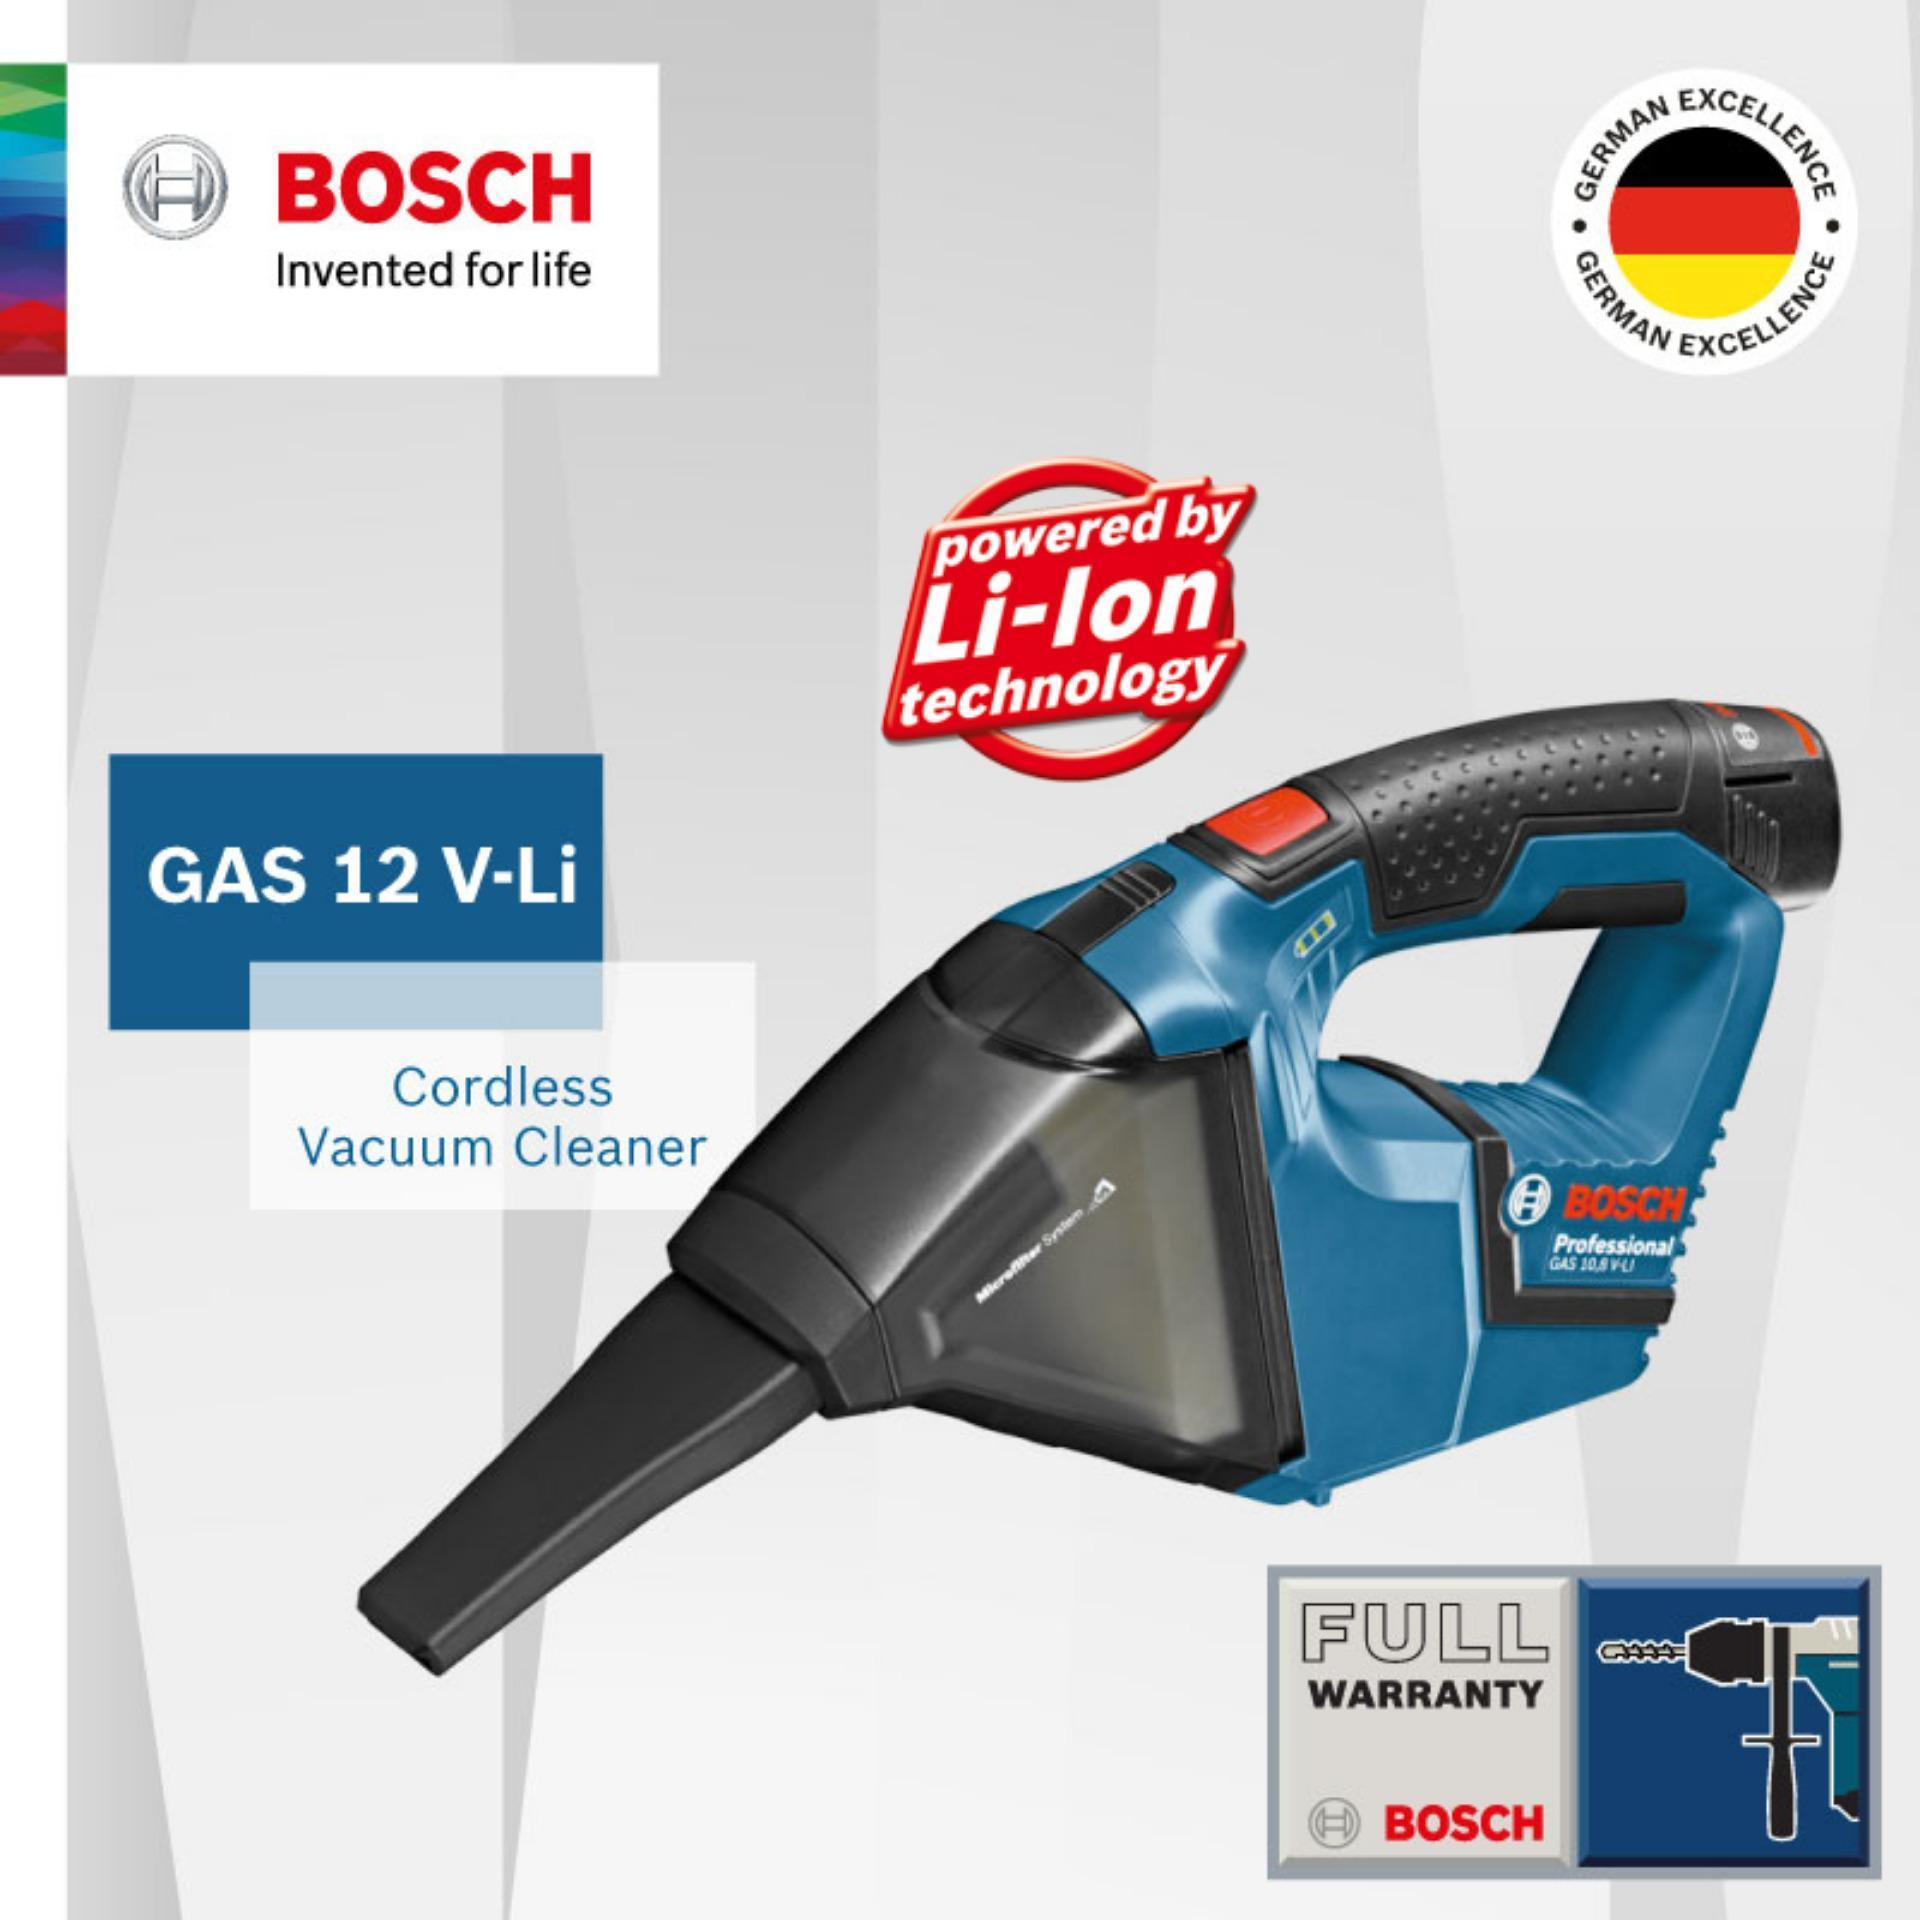 [FREE GIFT] Bosch Bundle GAS10.8 + Aquatek100 + Free 27 Inch Bosch Umbrella